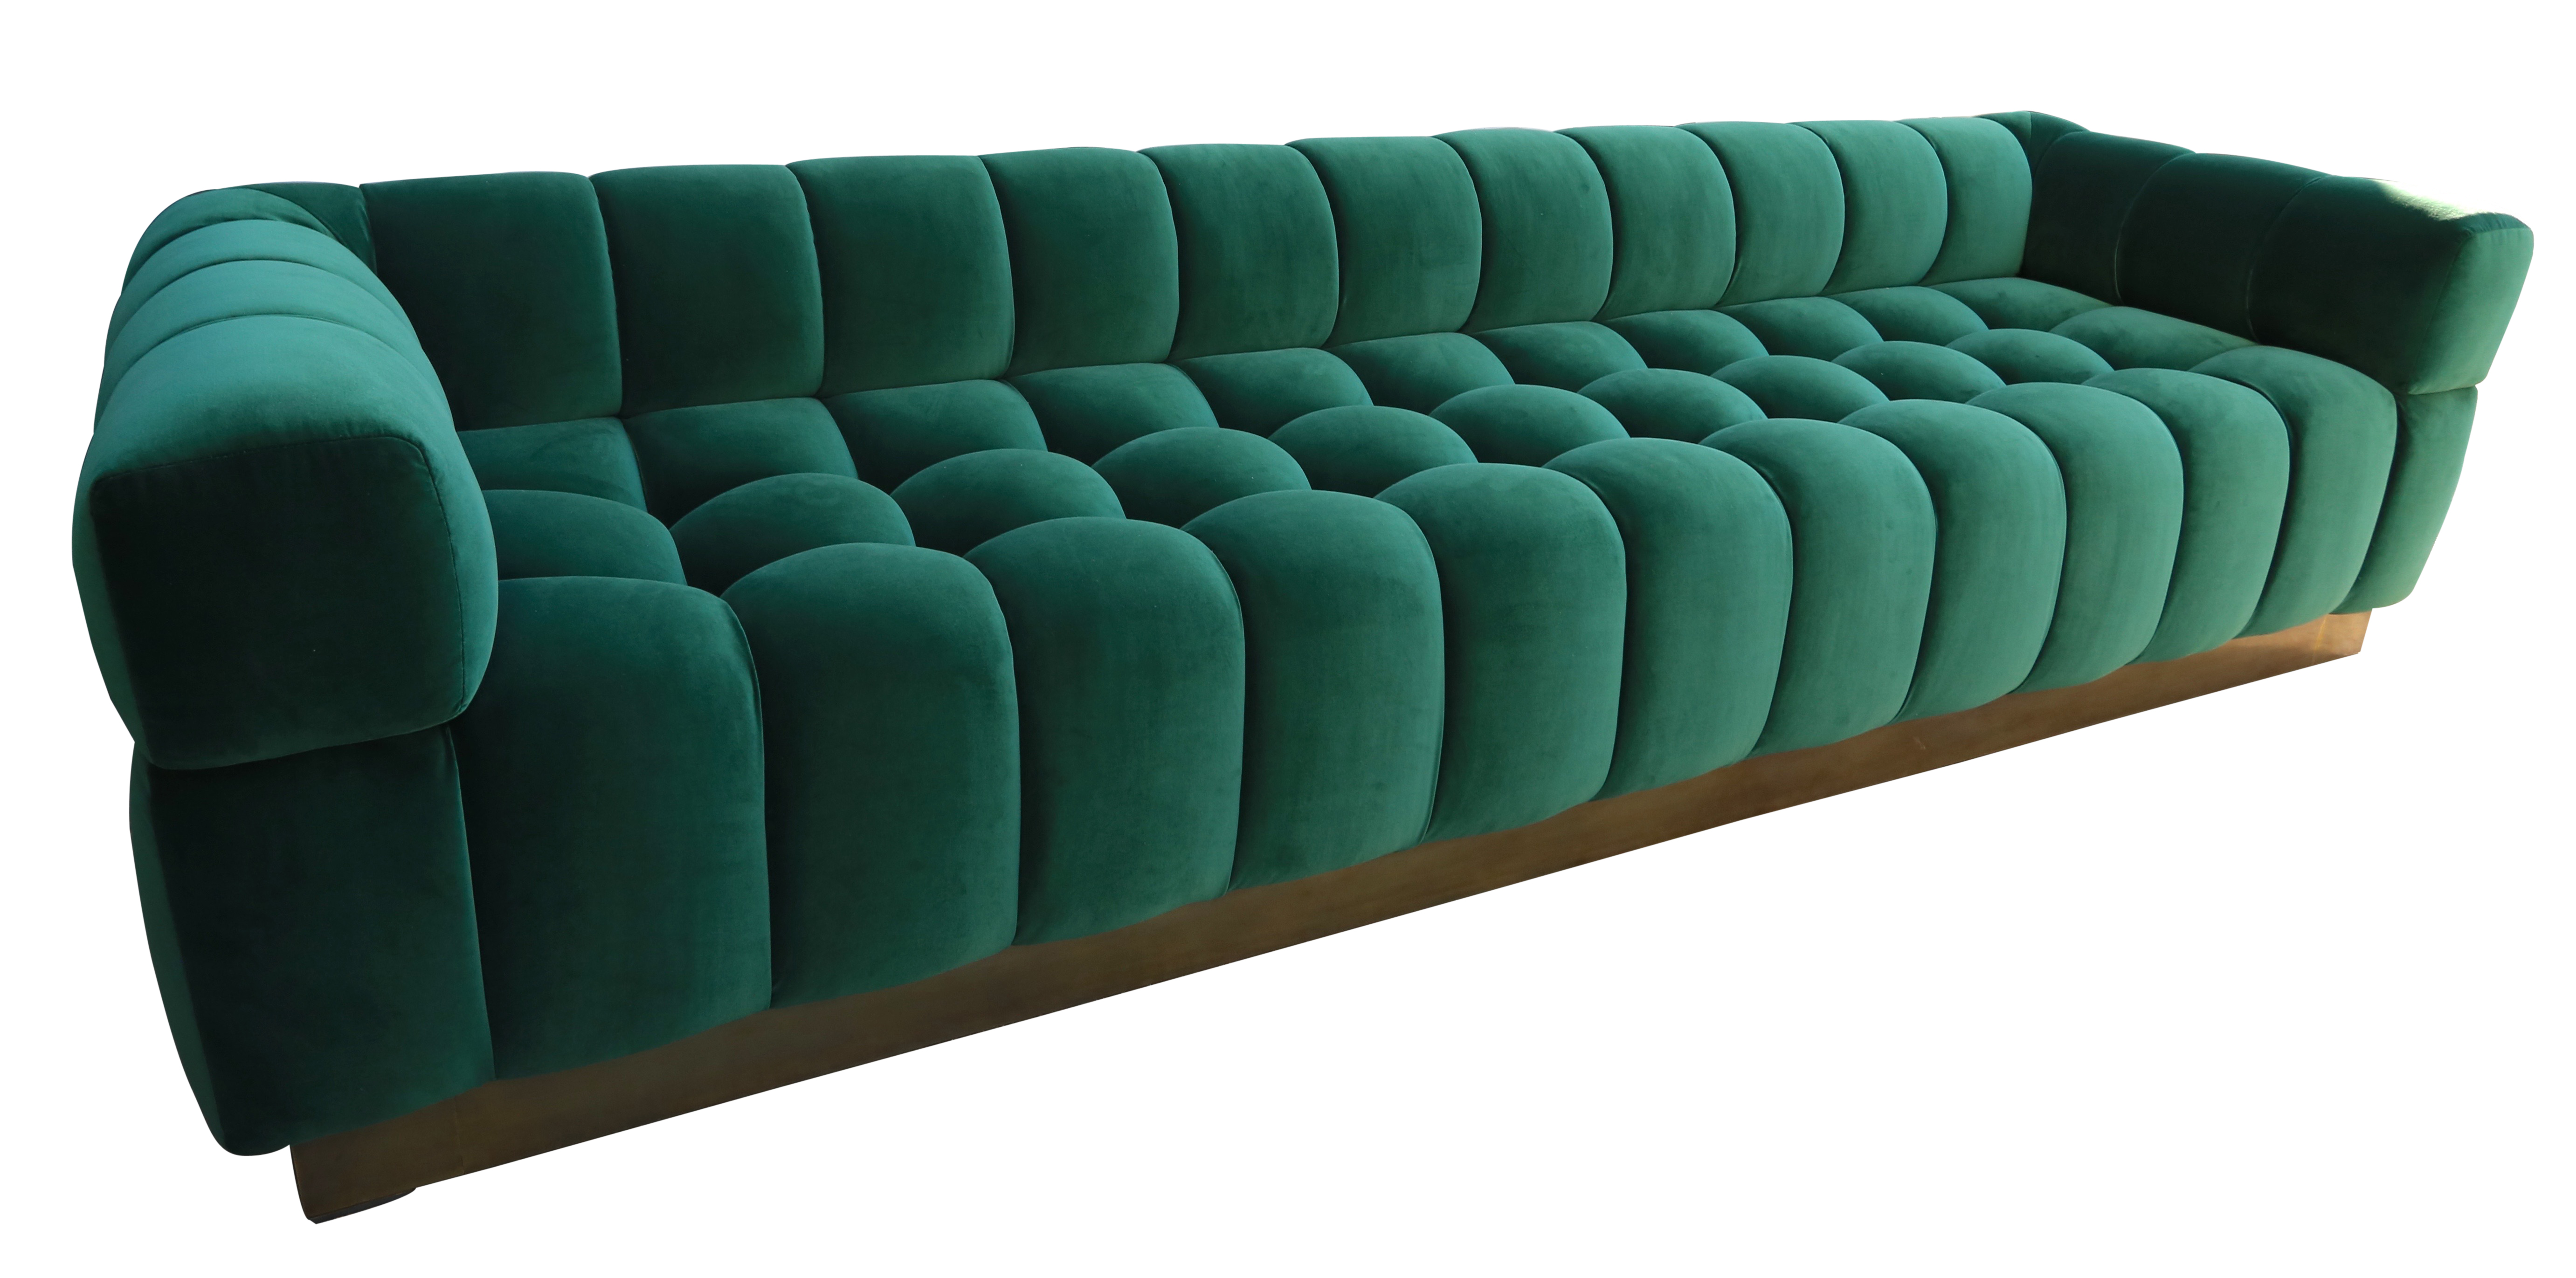 Custom Tufted Green Velvet Sofa with Brass Base - Mid-Century Modern Sofas  & Sectionals - Dering Hall